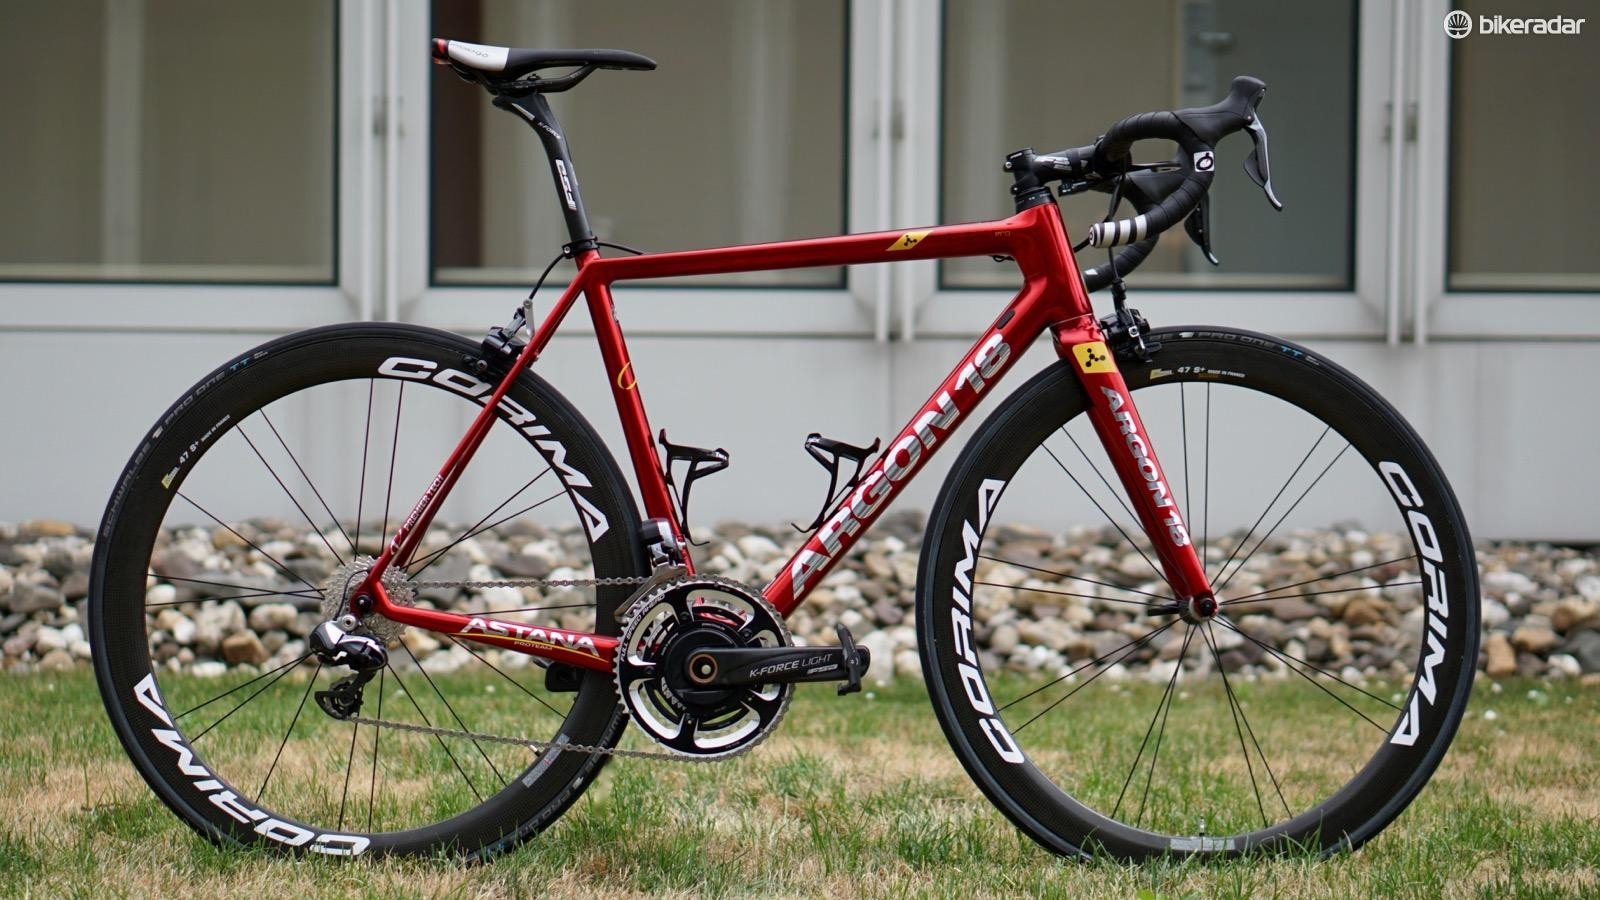 Fabio Aru was presented this new Argon 18 just before the Tour de France began